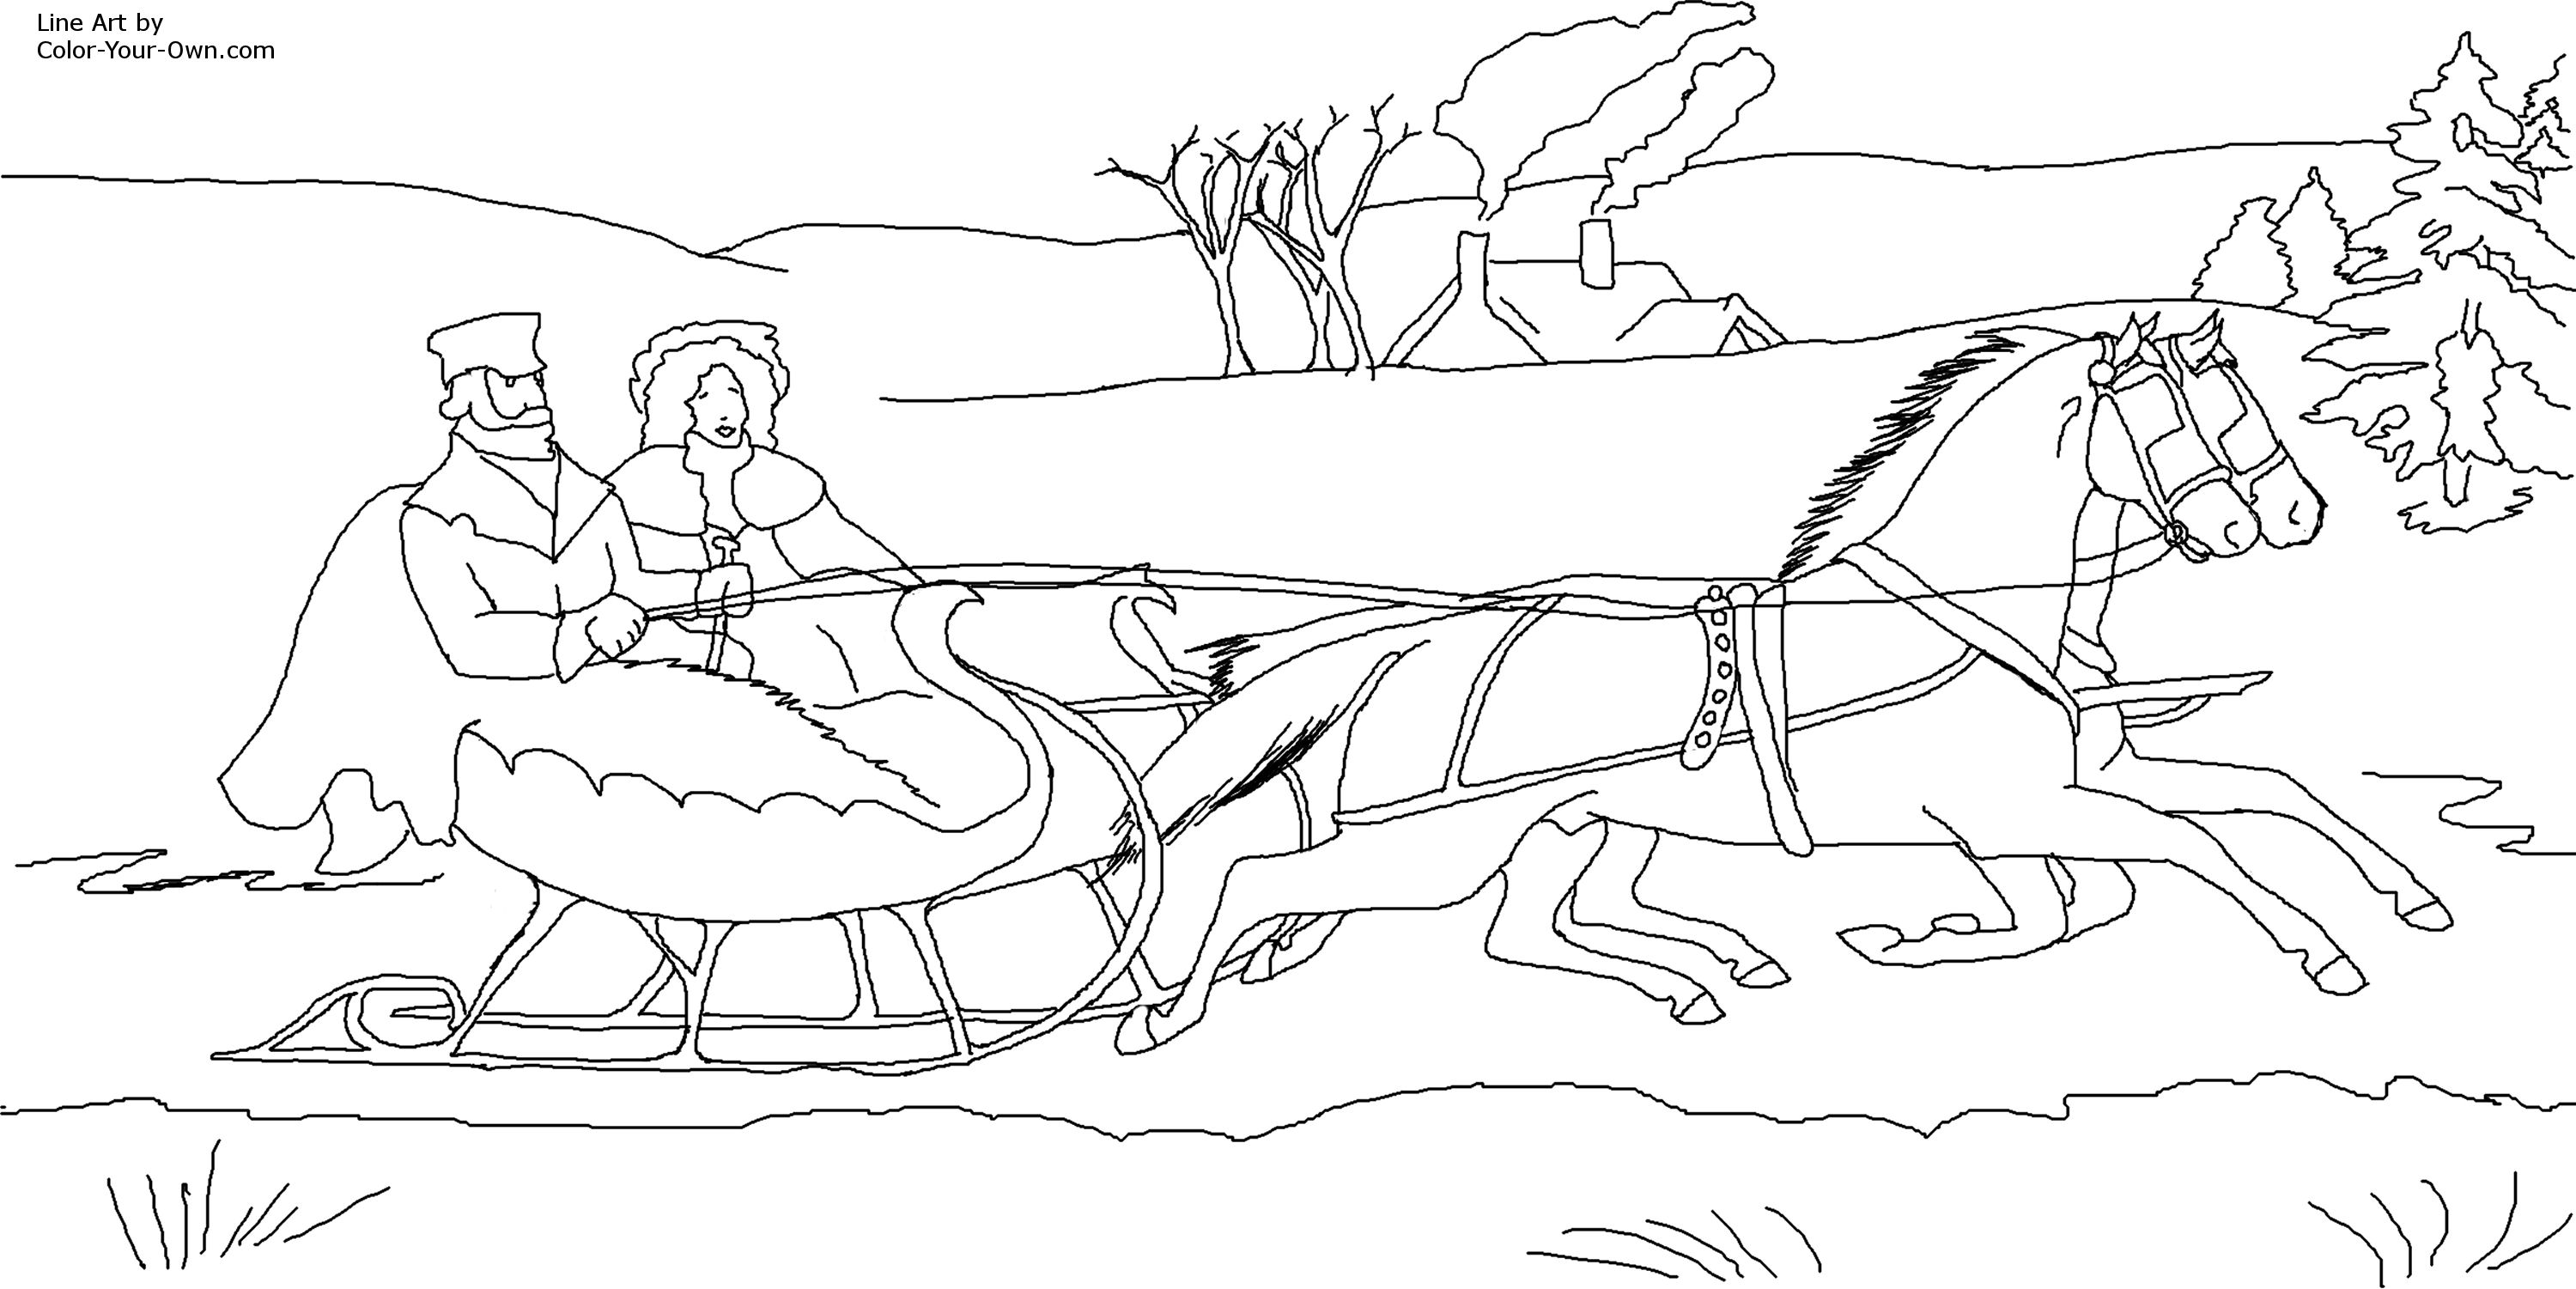 Coloring page one horse open sleigh - Horse Drawn Sleigh Coloring Page